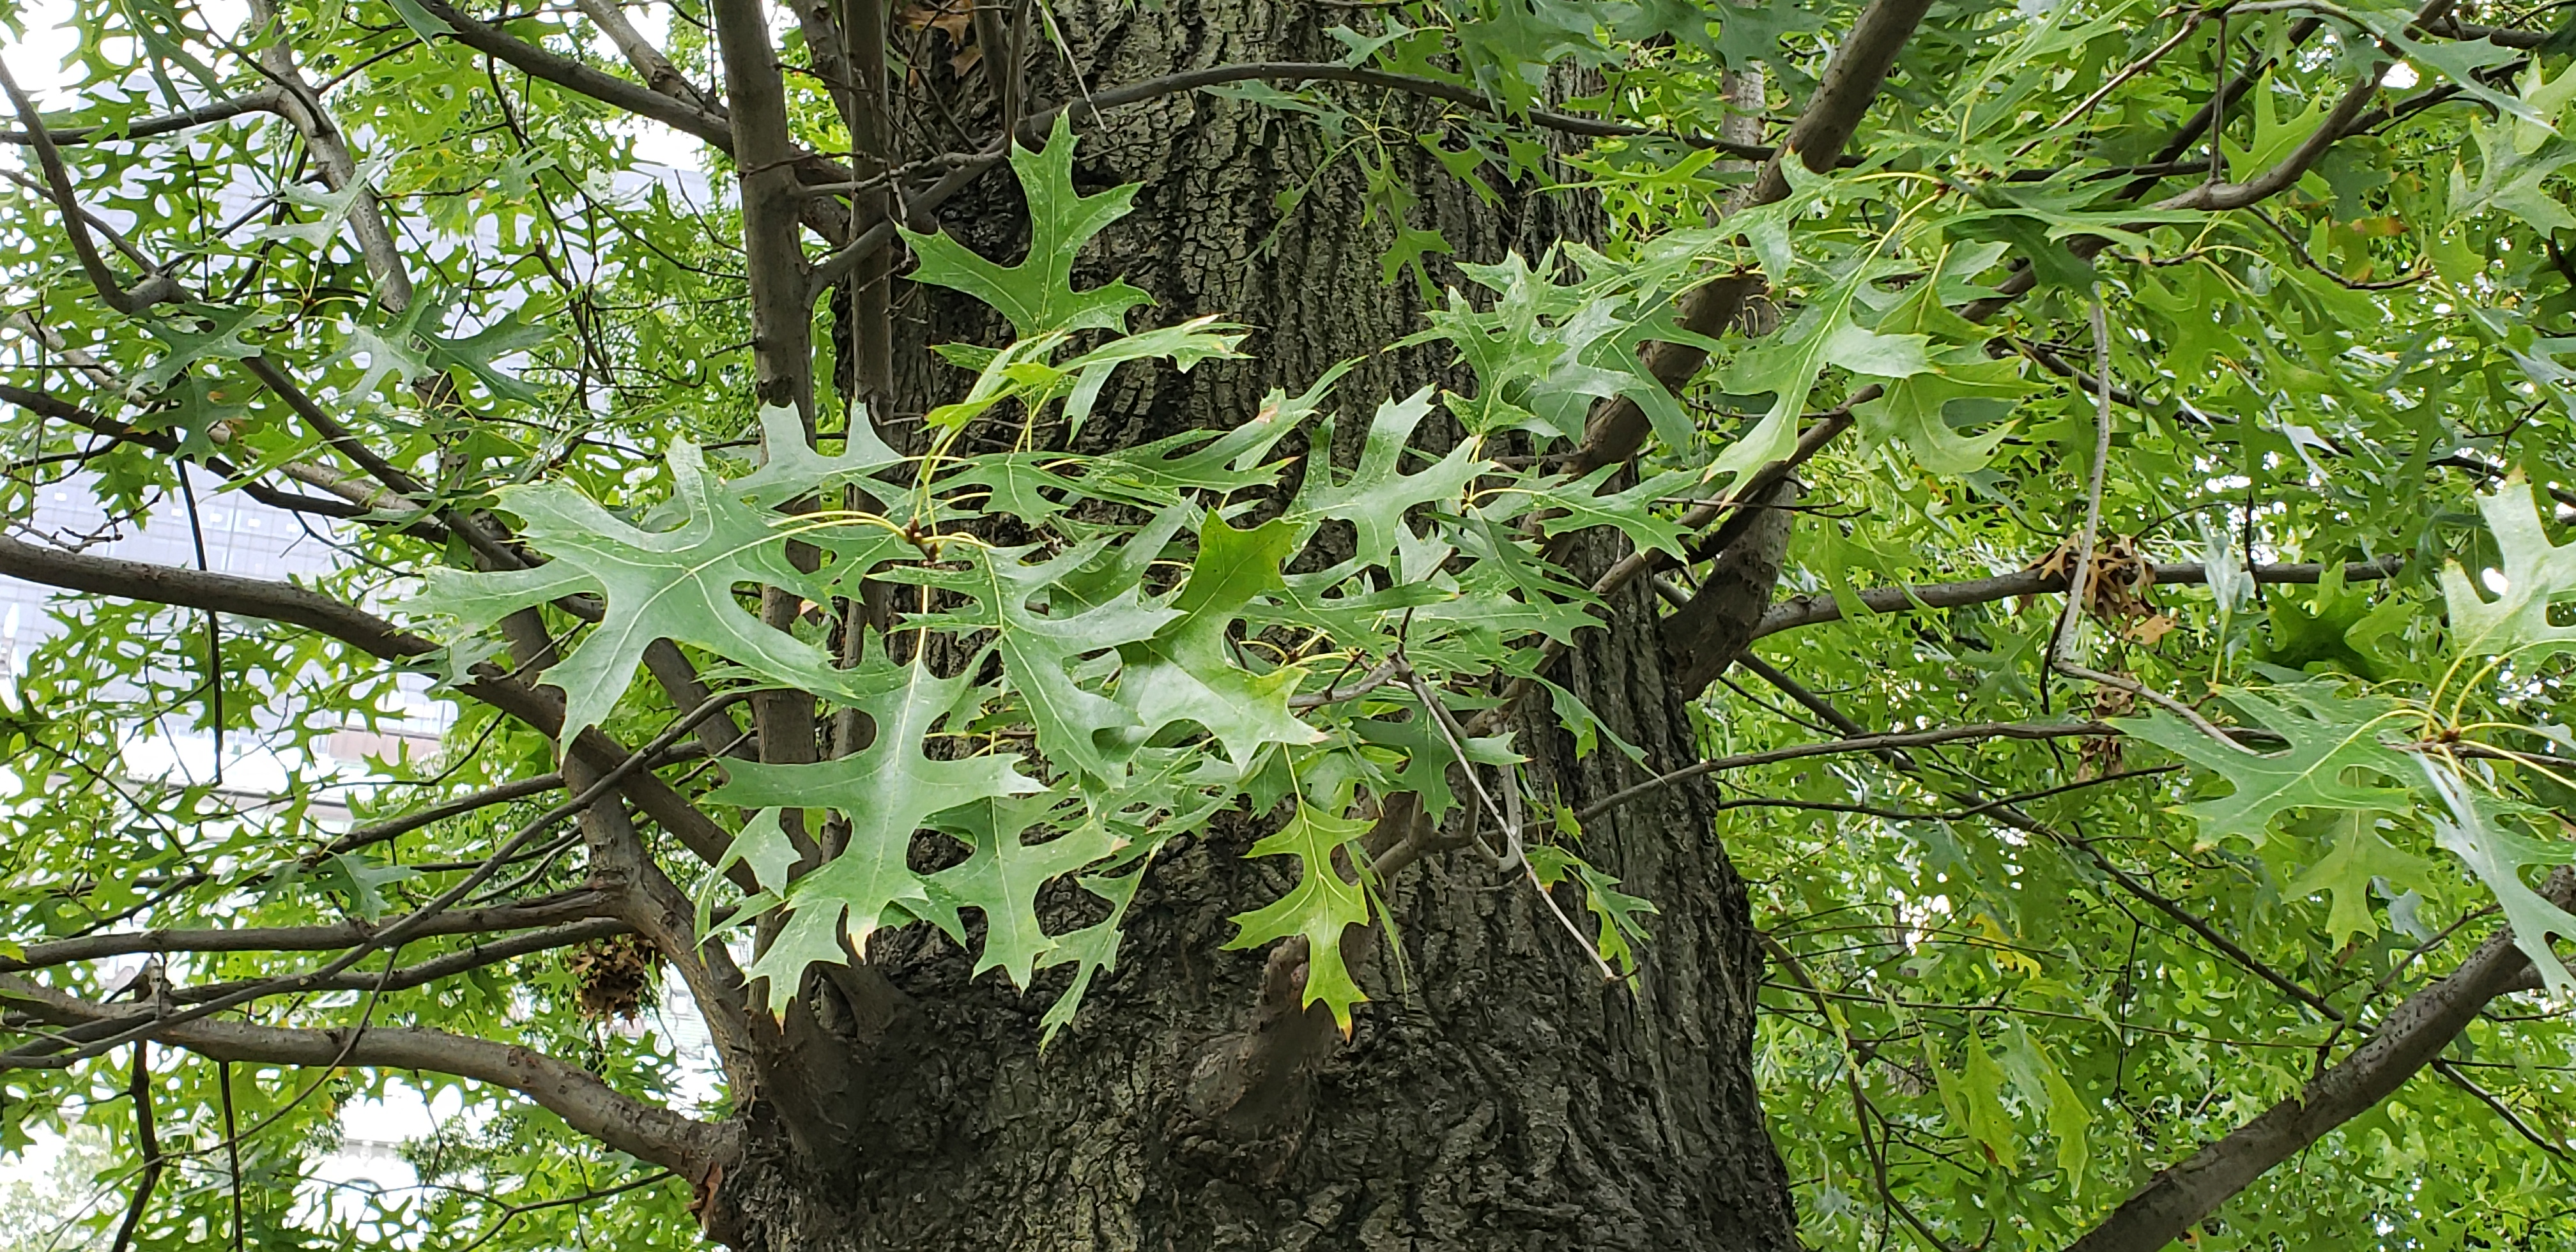 Quercus palustris plantplacesimage20181014_092542.jpg